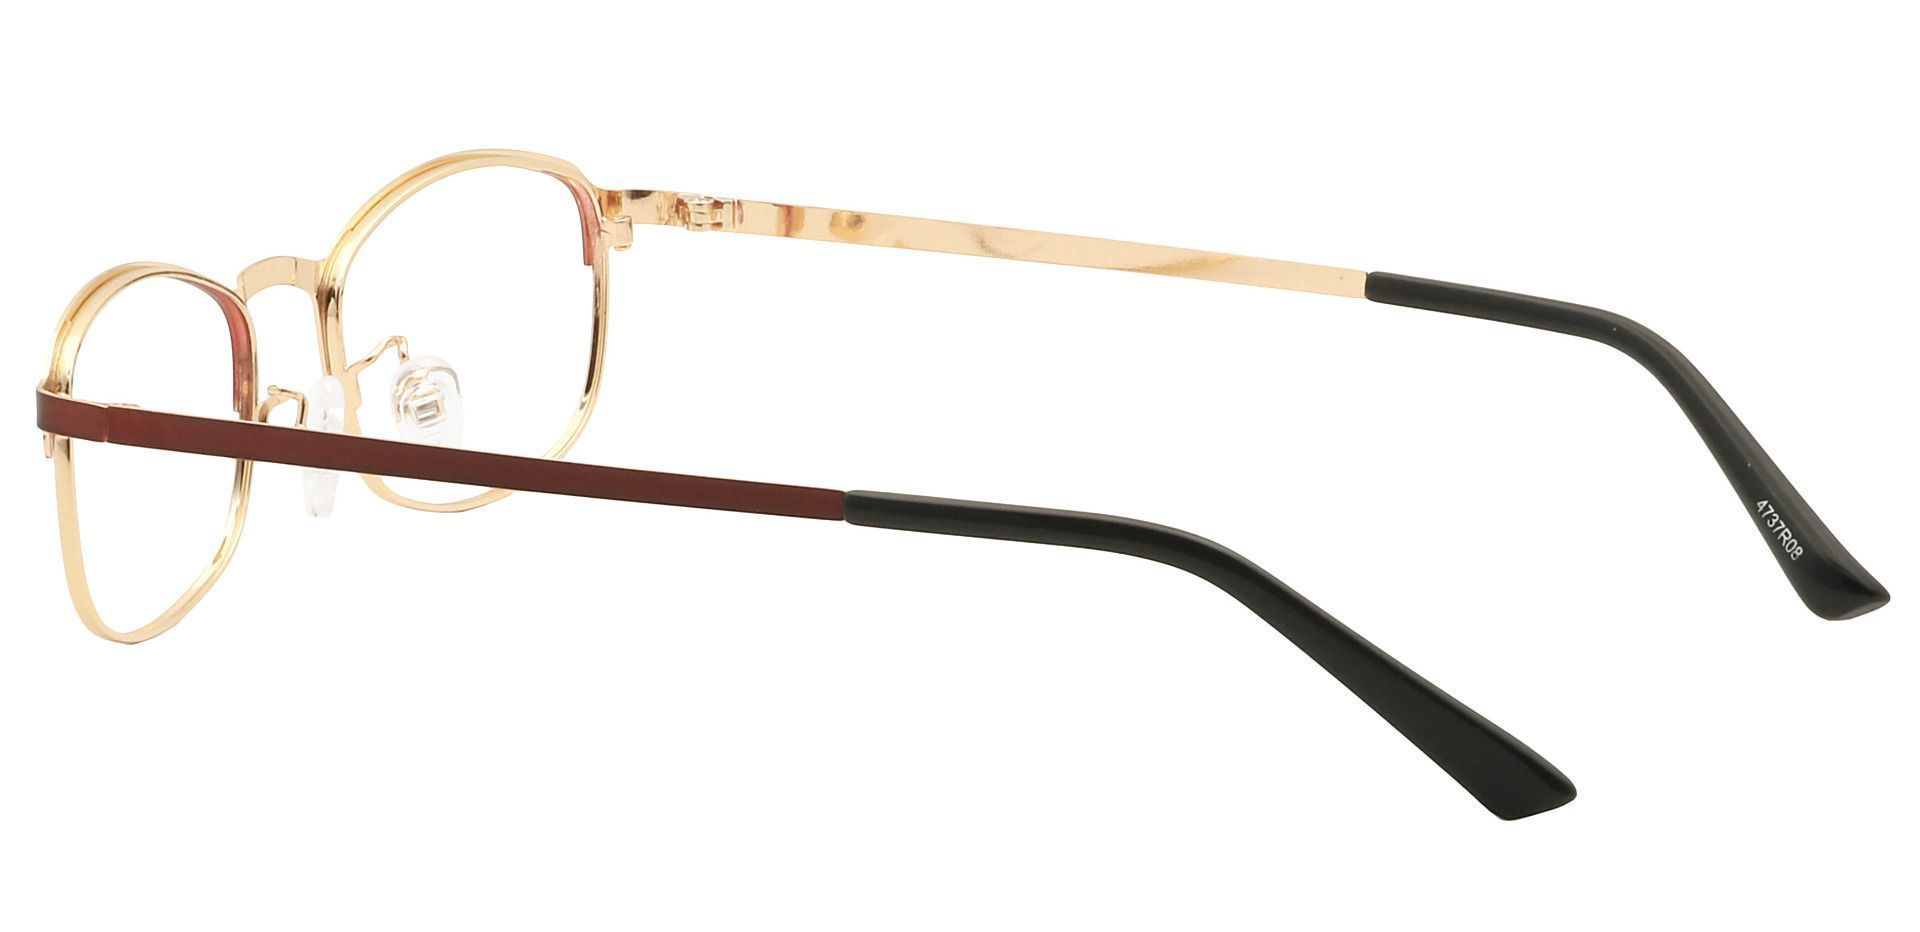 Tyrell Oval Prescription Glasses - Red